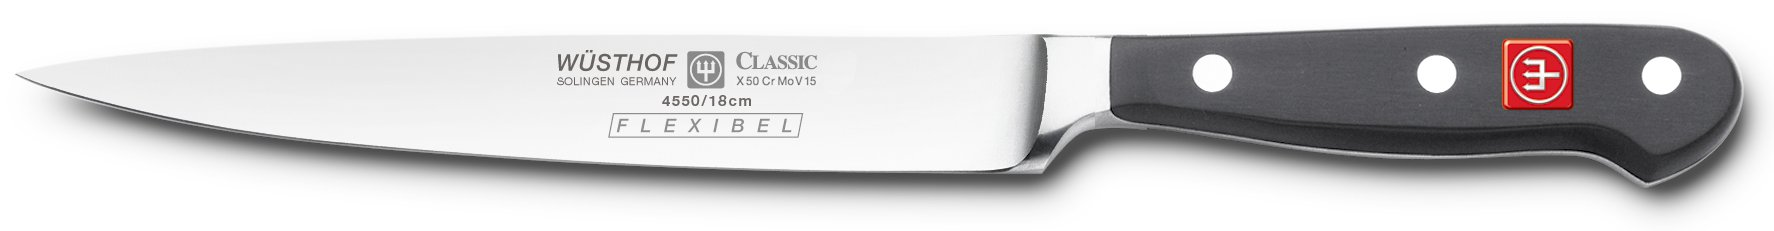 Wusthof Classic Flexible 7 Inch Fillet Knife by Wüsthof